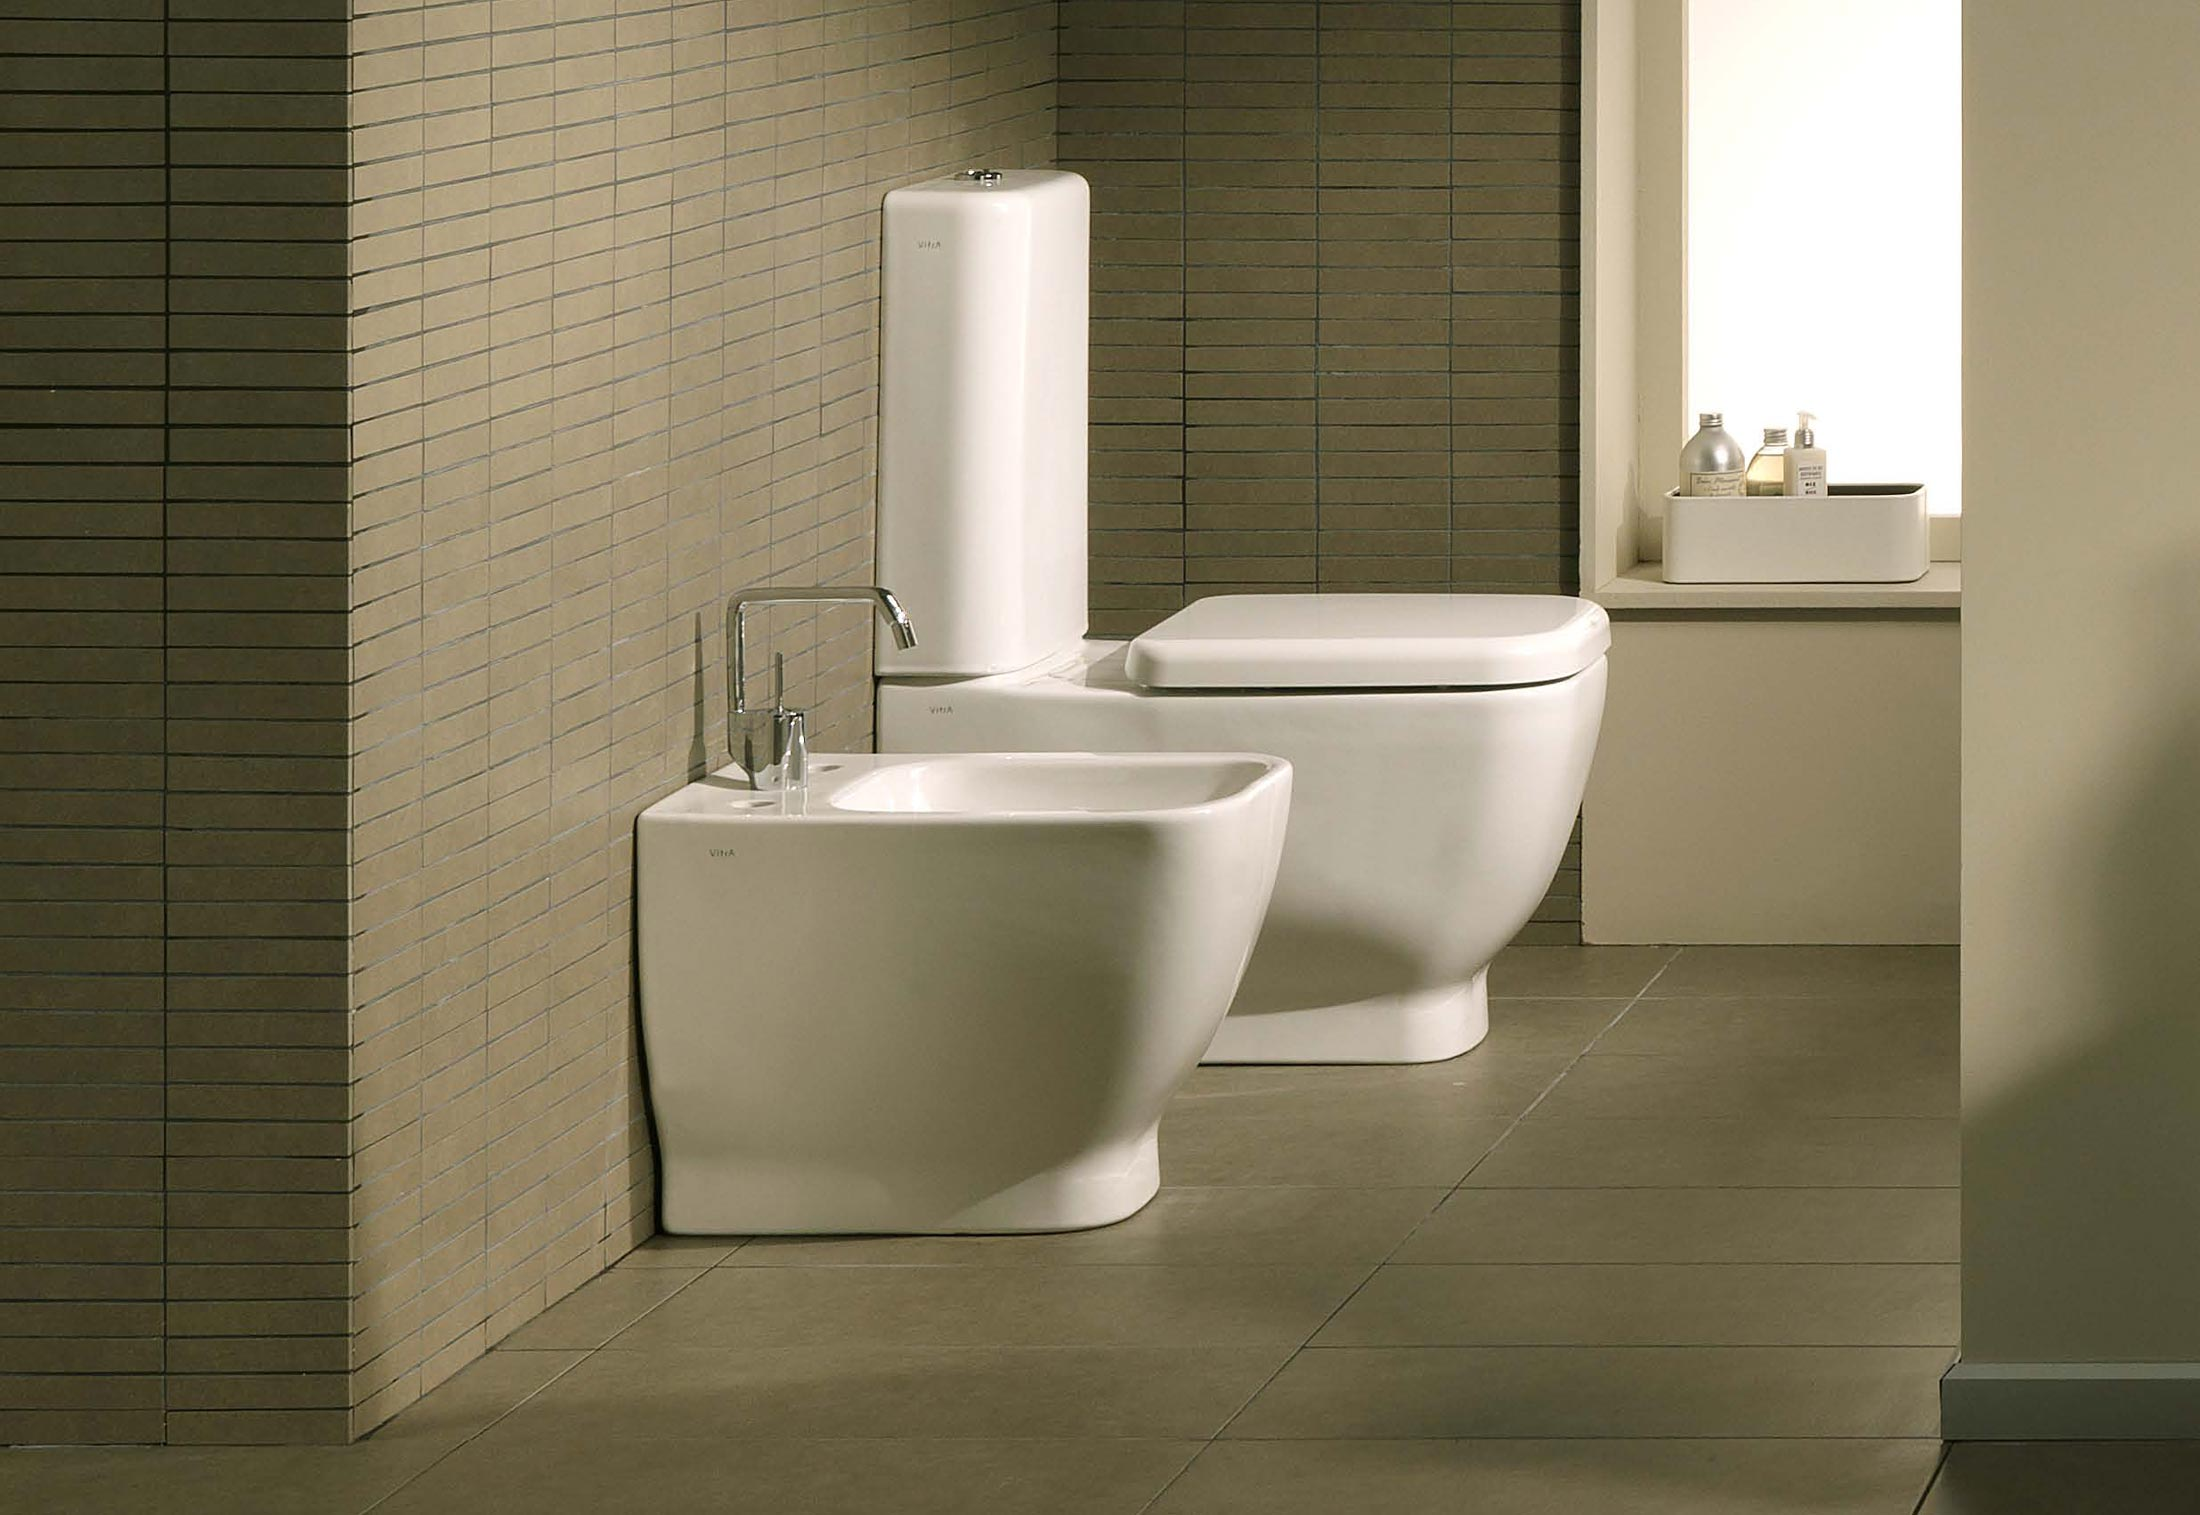 bidet toilette affordable sanitr stand gsg oz modell wc. Black Bedroom Furniture Sets. Home Design Ideas